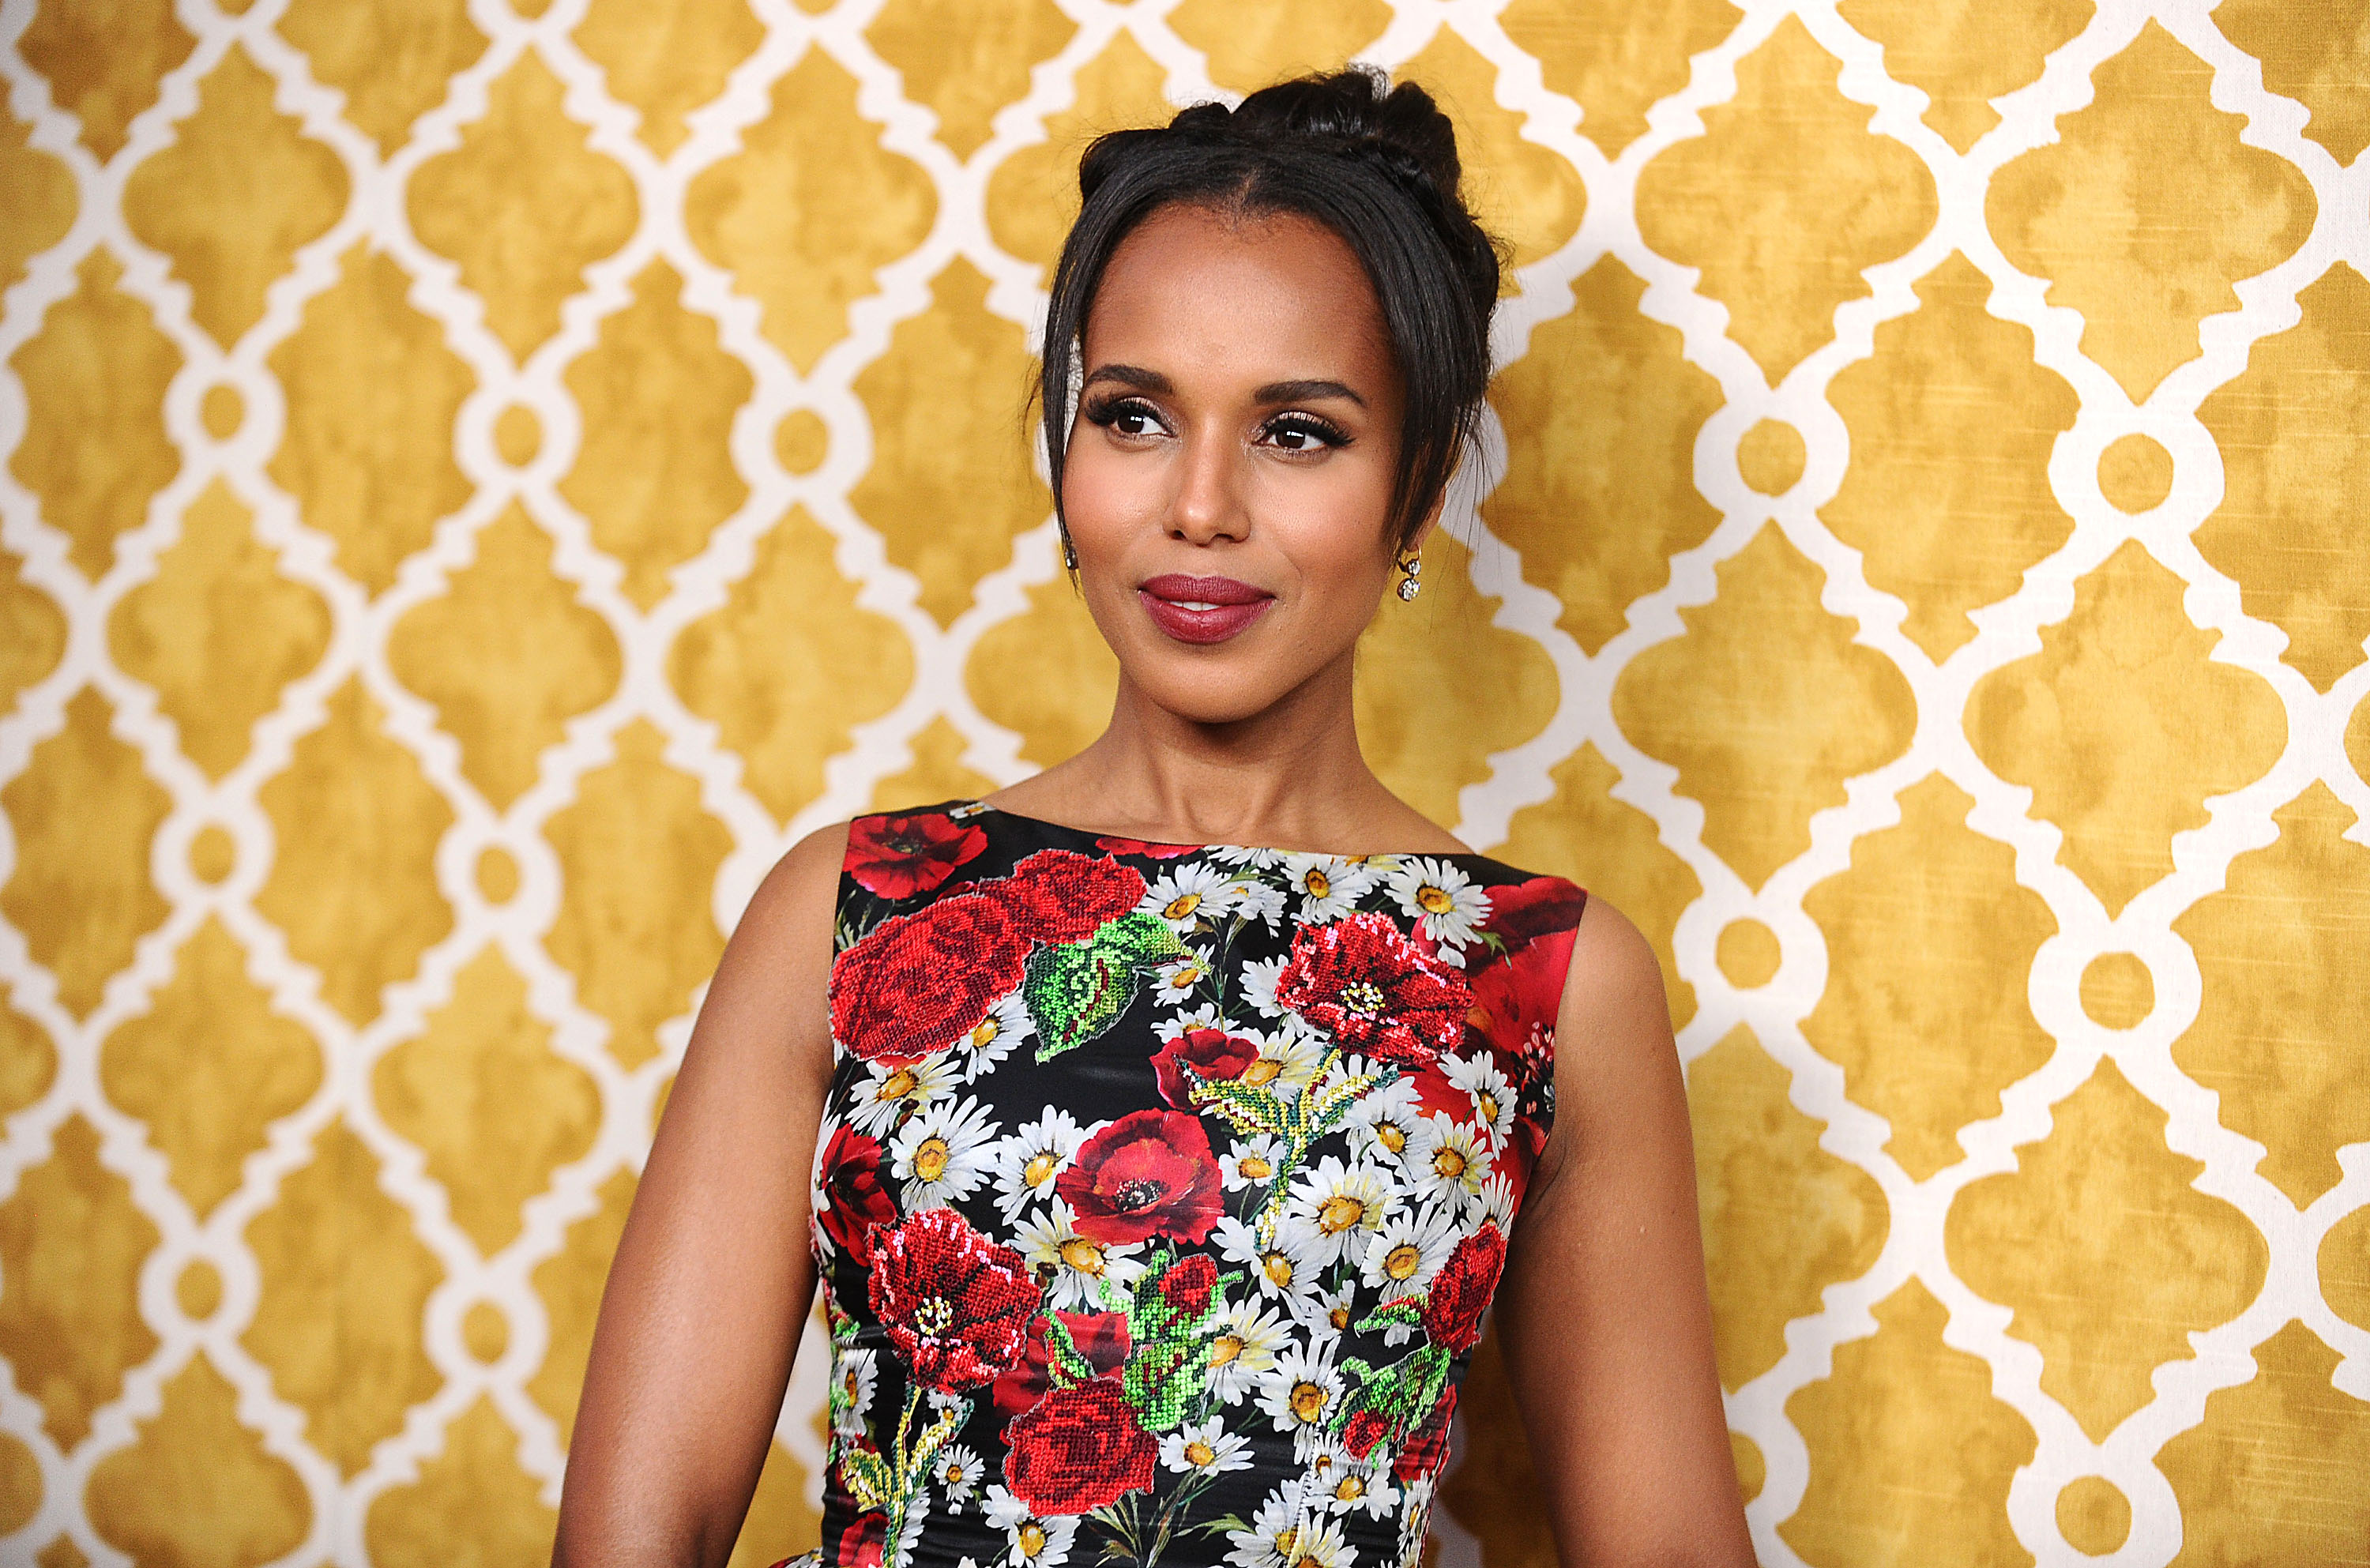 Kerry Washington attends the premiere of  Confirmation  at Paramount Theater on the Paramount Studios lot on March 31, 2016 in Hollywood, California.